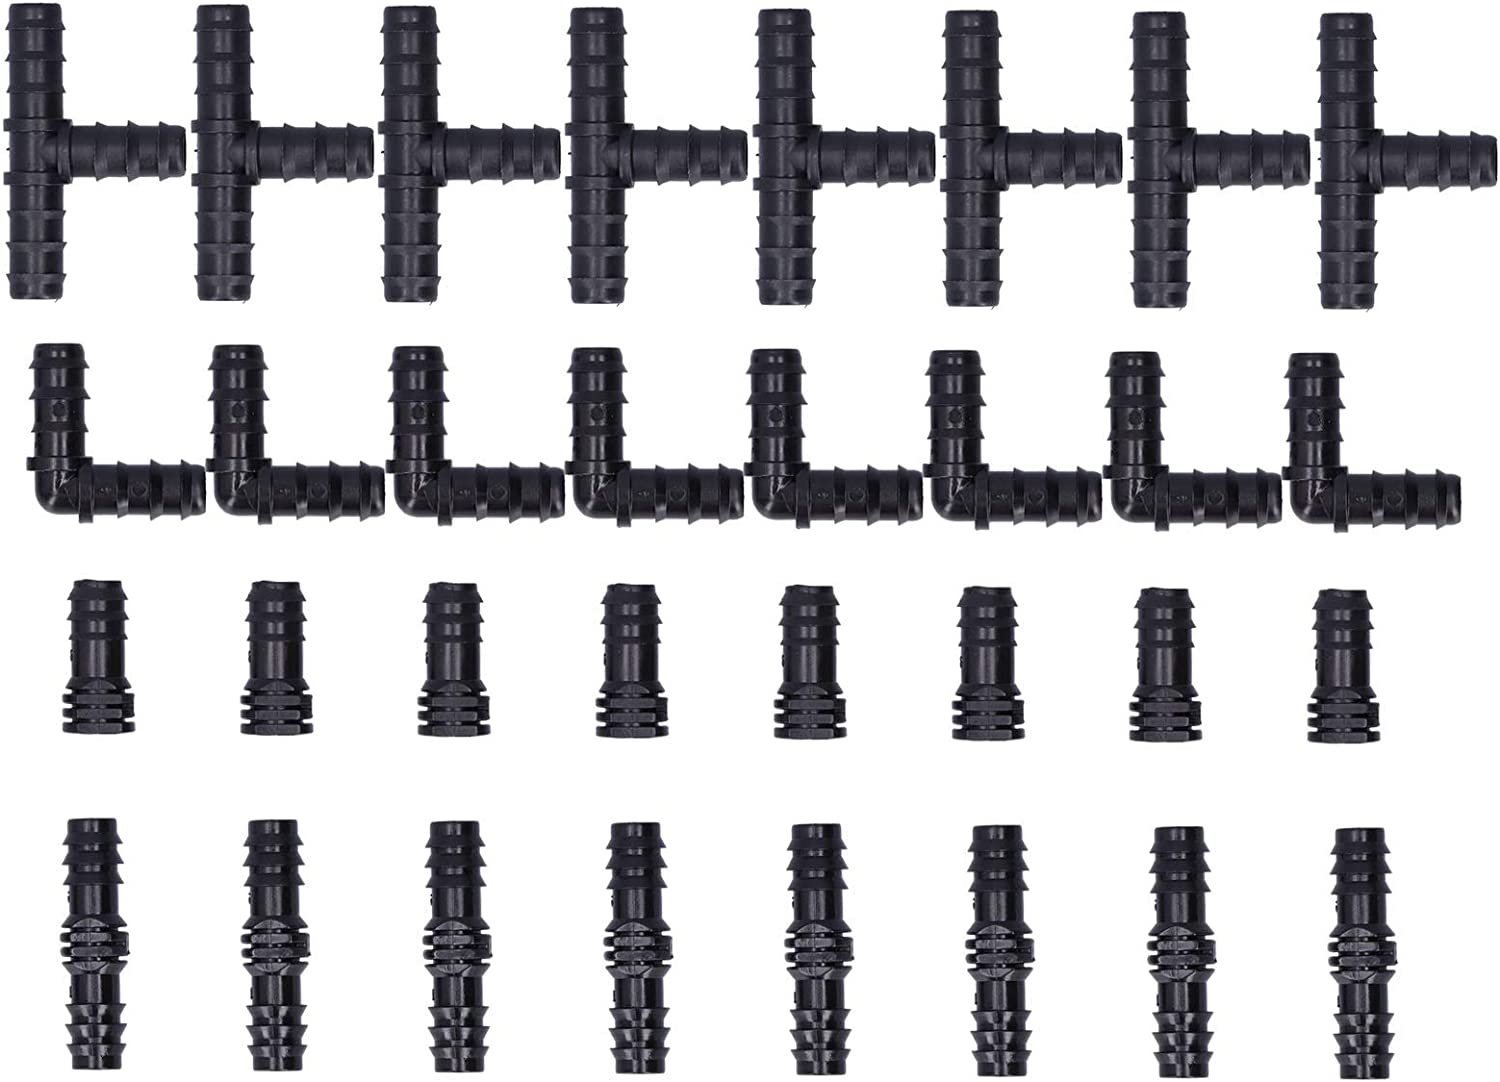 Deror 32Pcs Special Campaign Drip Irrigation Kit Fitting Tees Con Max 90% OFF